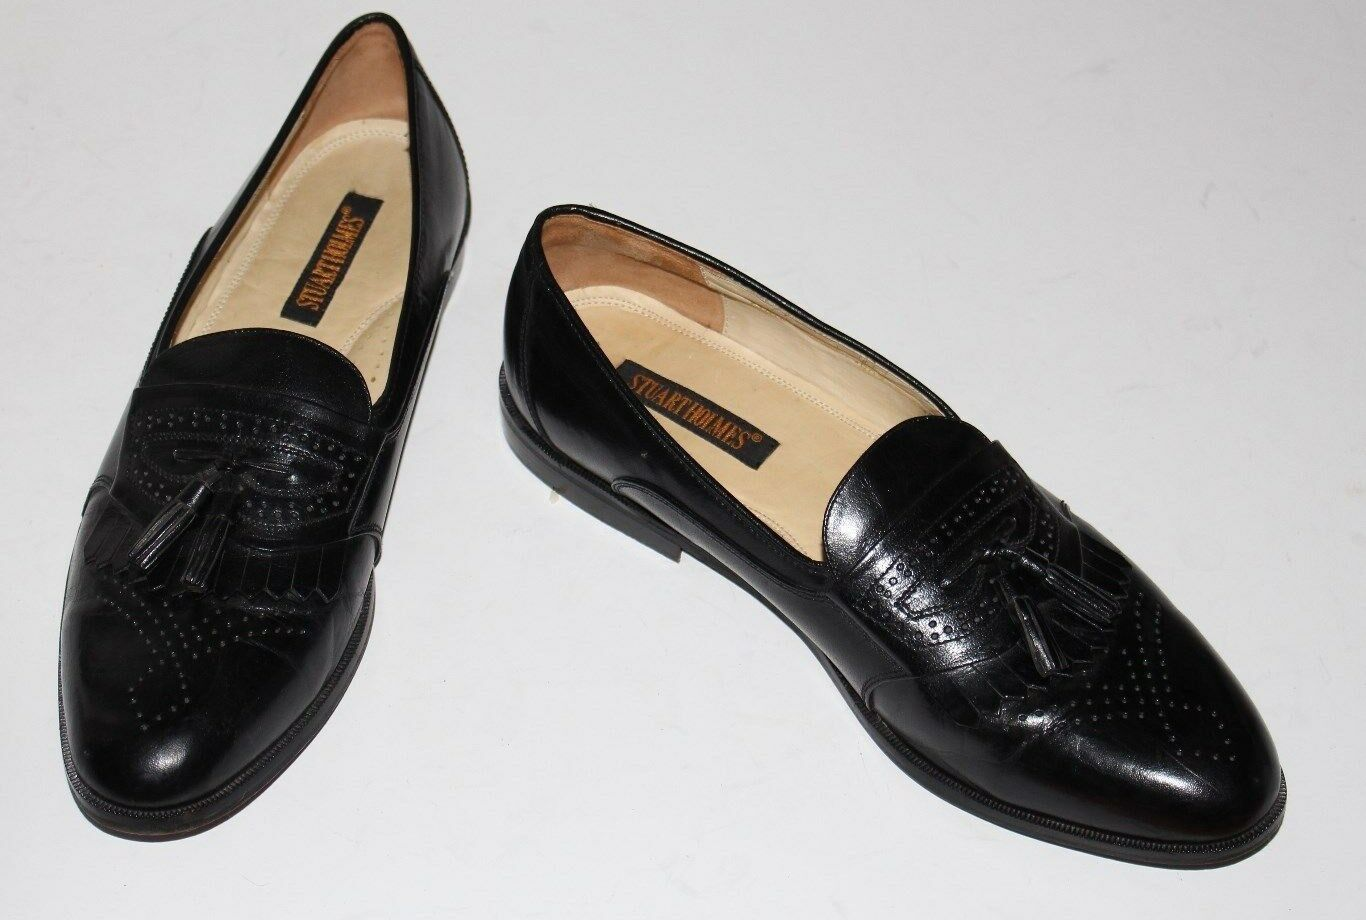 Stuart Holmes 10.5 Black Leather Kiltie Tassel Loafer Leather Soles Lining